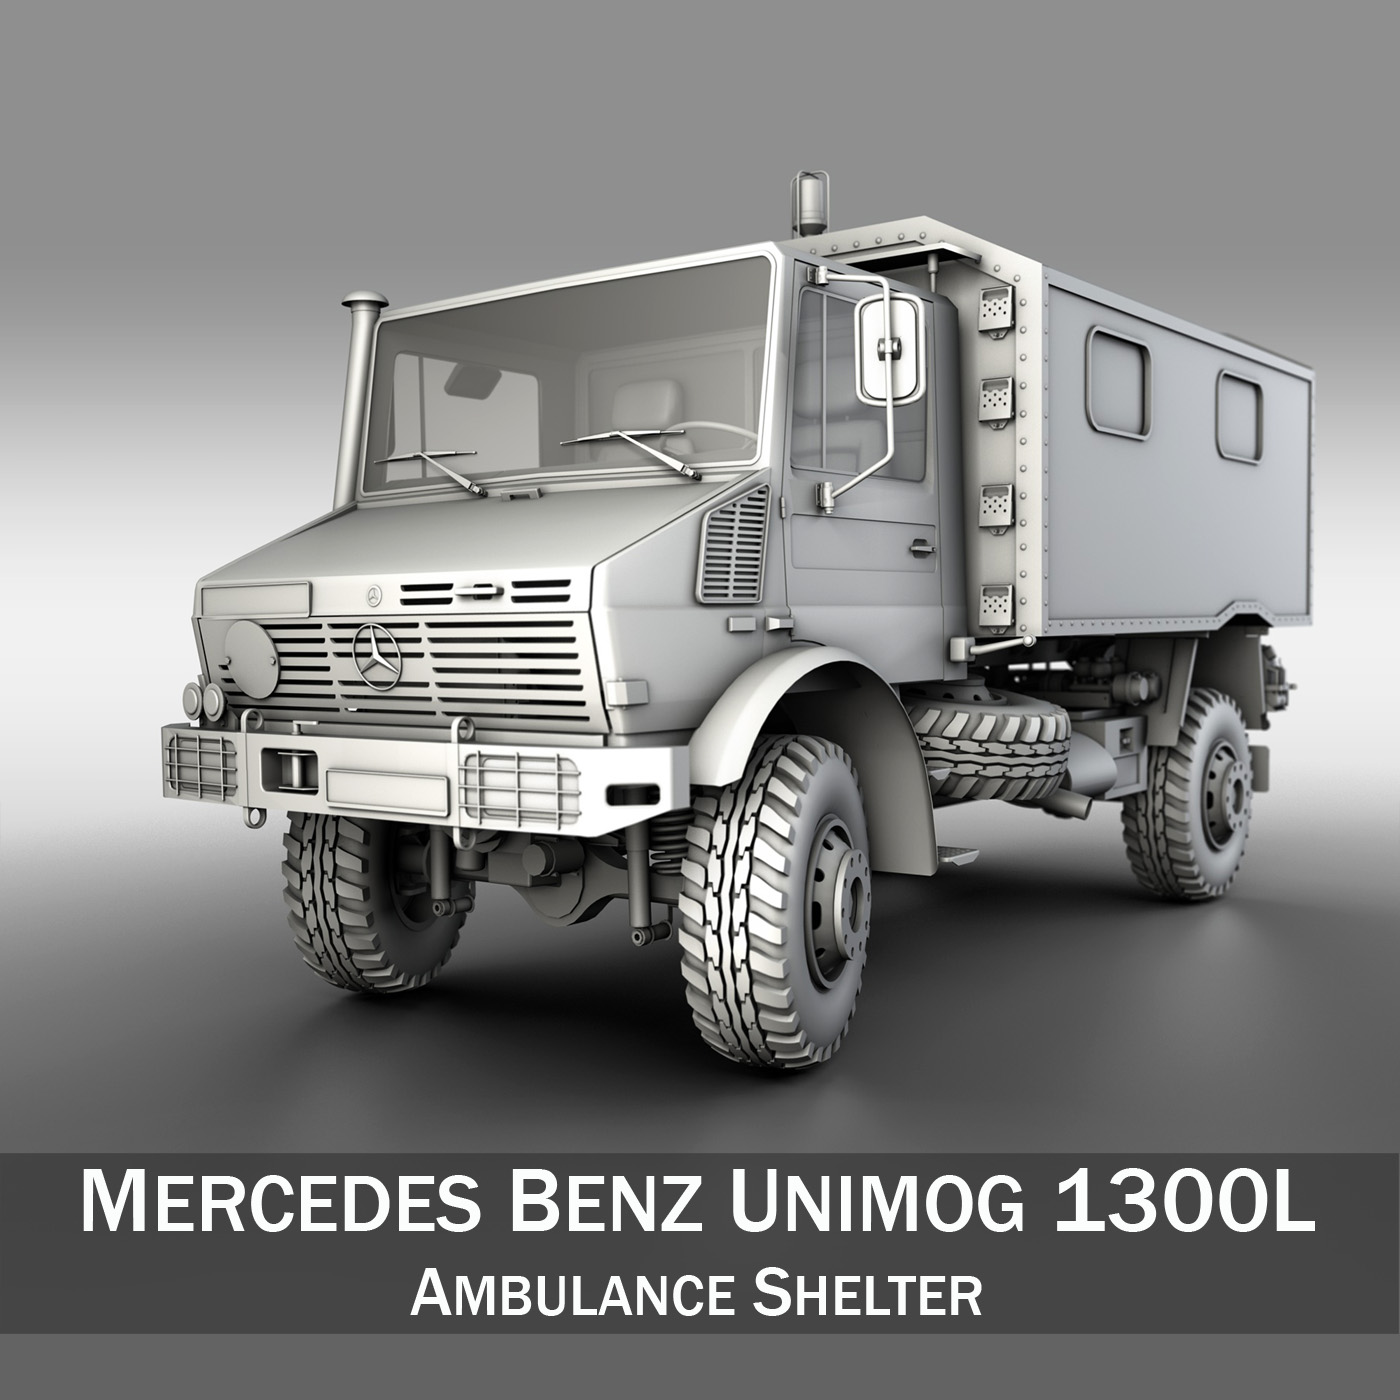 mercedes benz unimog u1300l – ambulance trailer 3d model 3ds fbx c4d lwo obj 189593